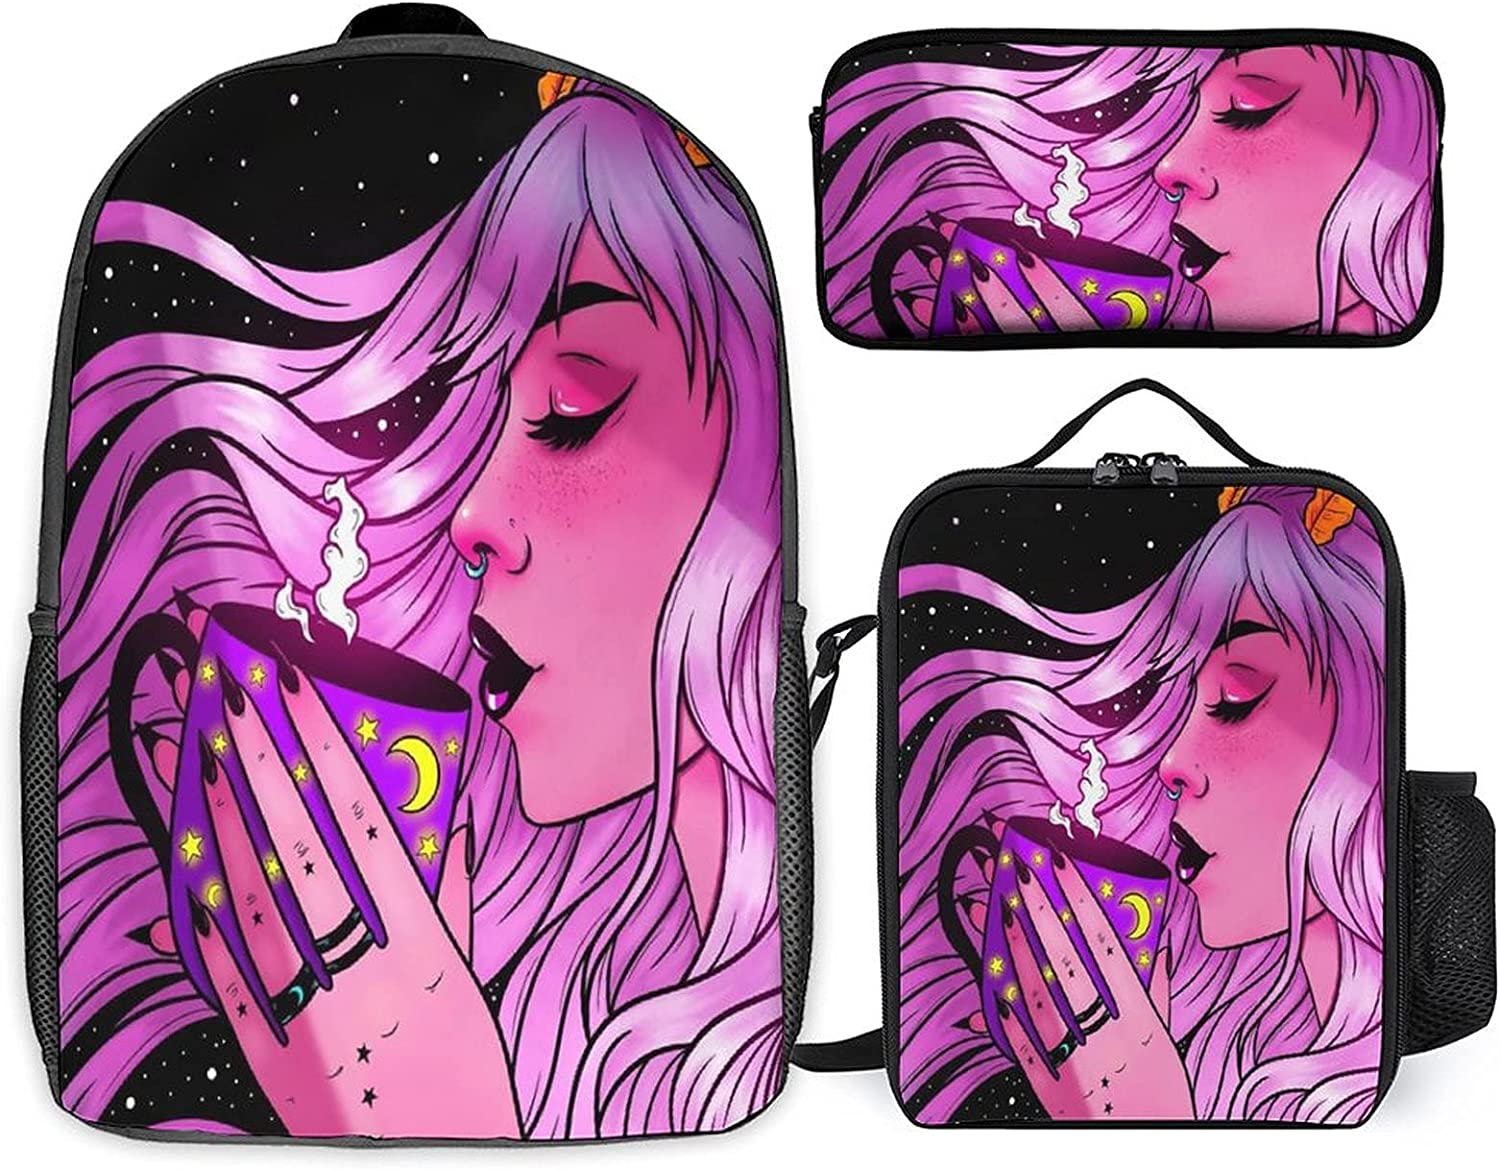 Stoner Art Three-piece Sale Recommended SALE% OFF set of st + schoolbag student